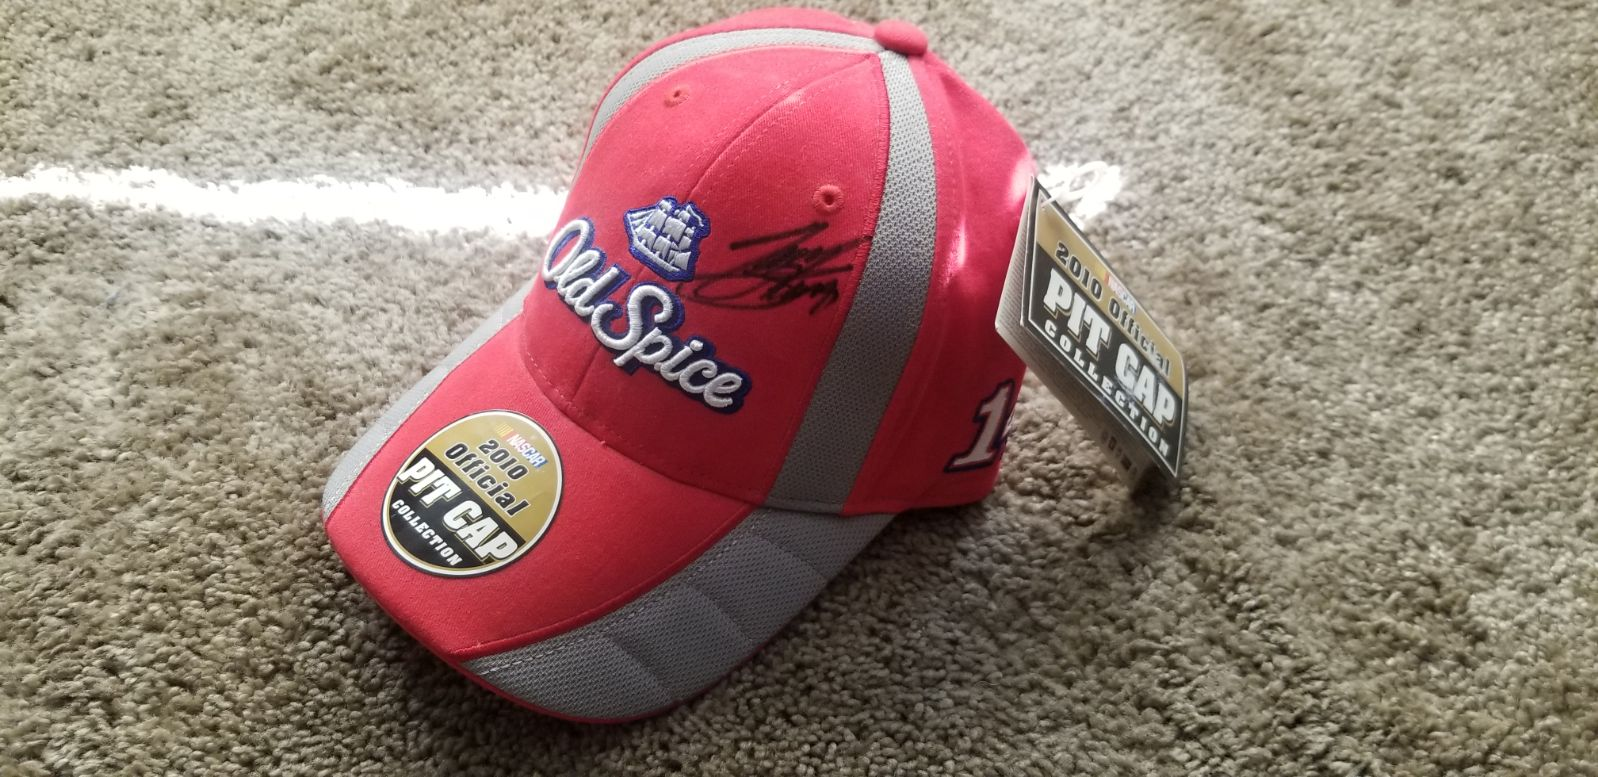 Tony Stewart old spice 14 autographed ha